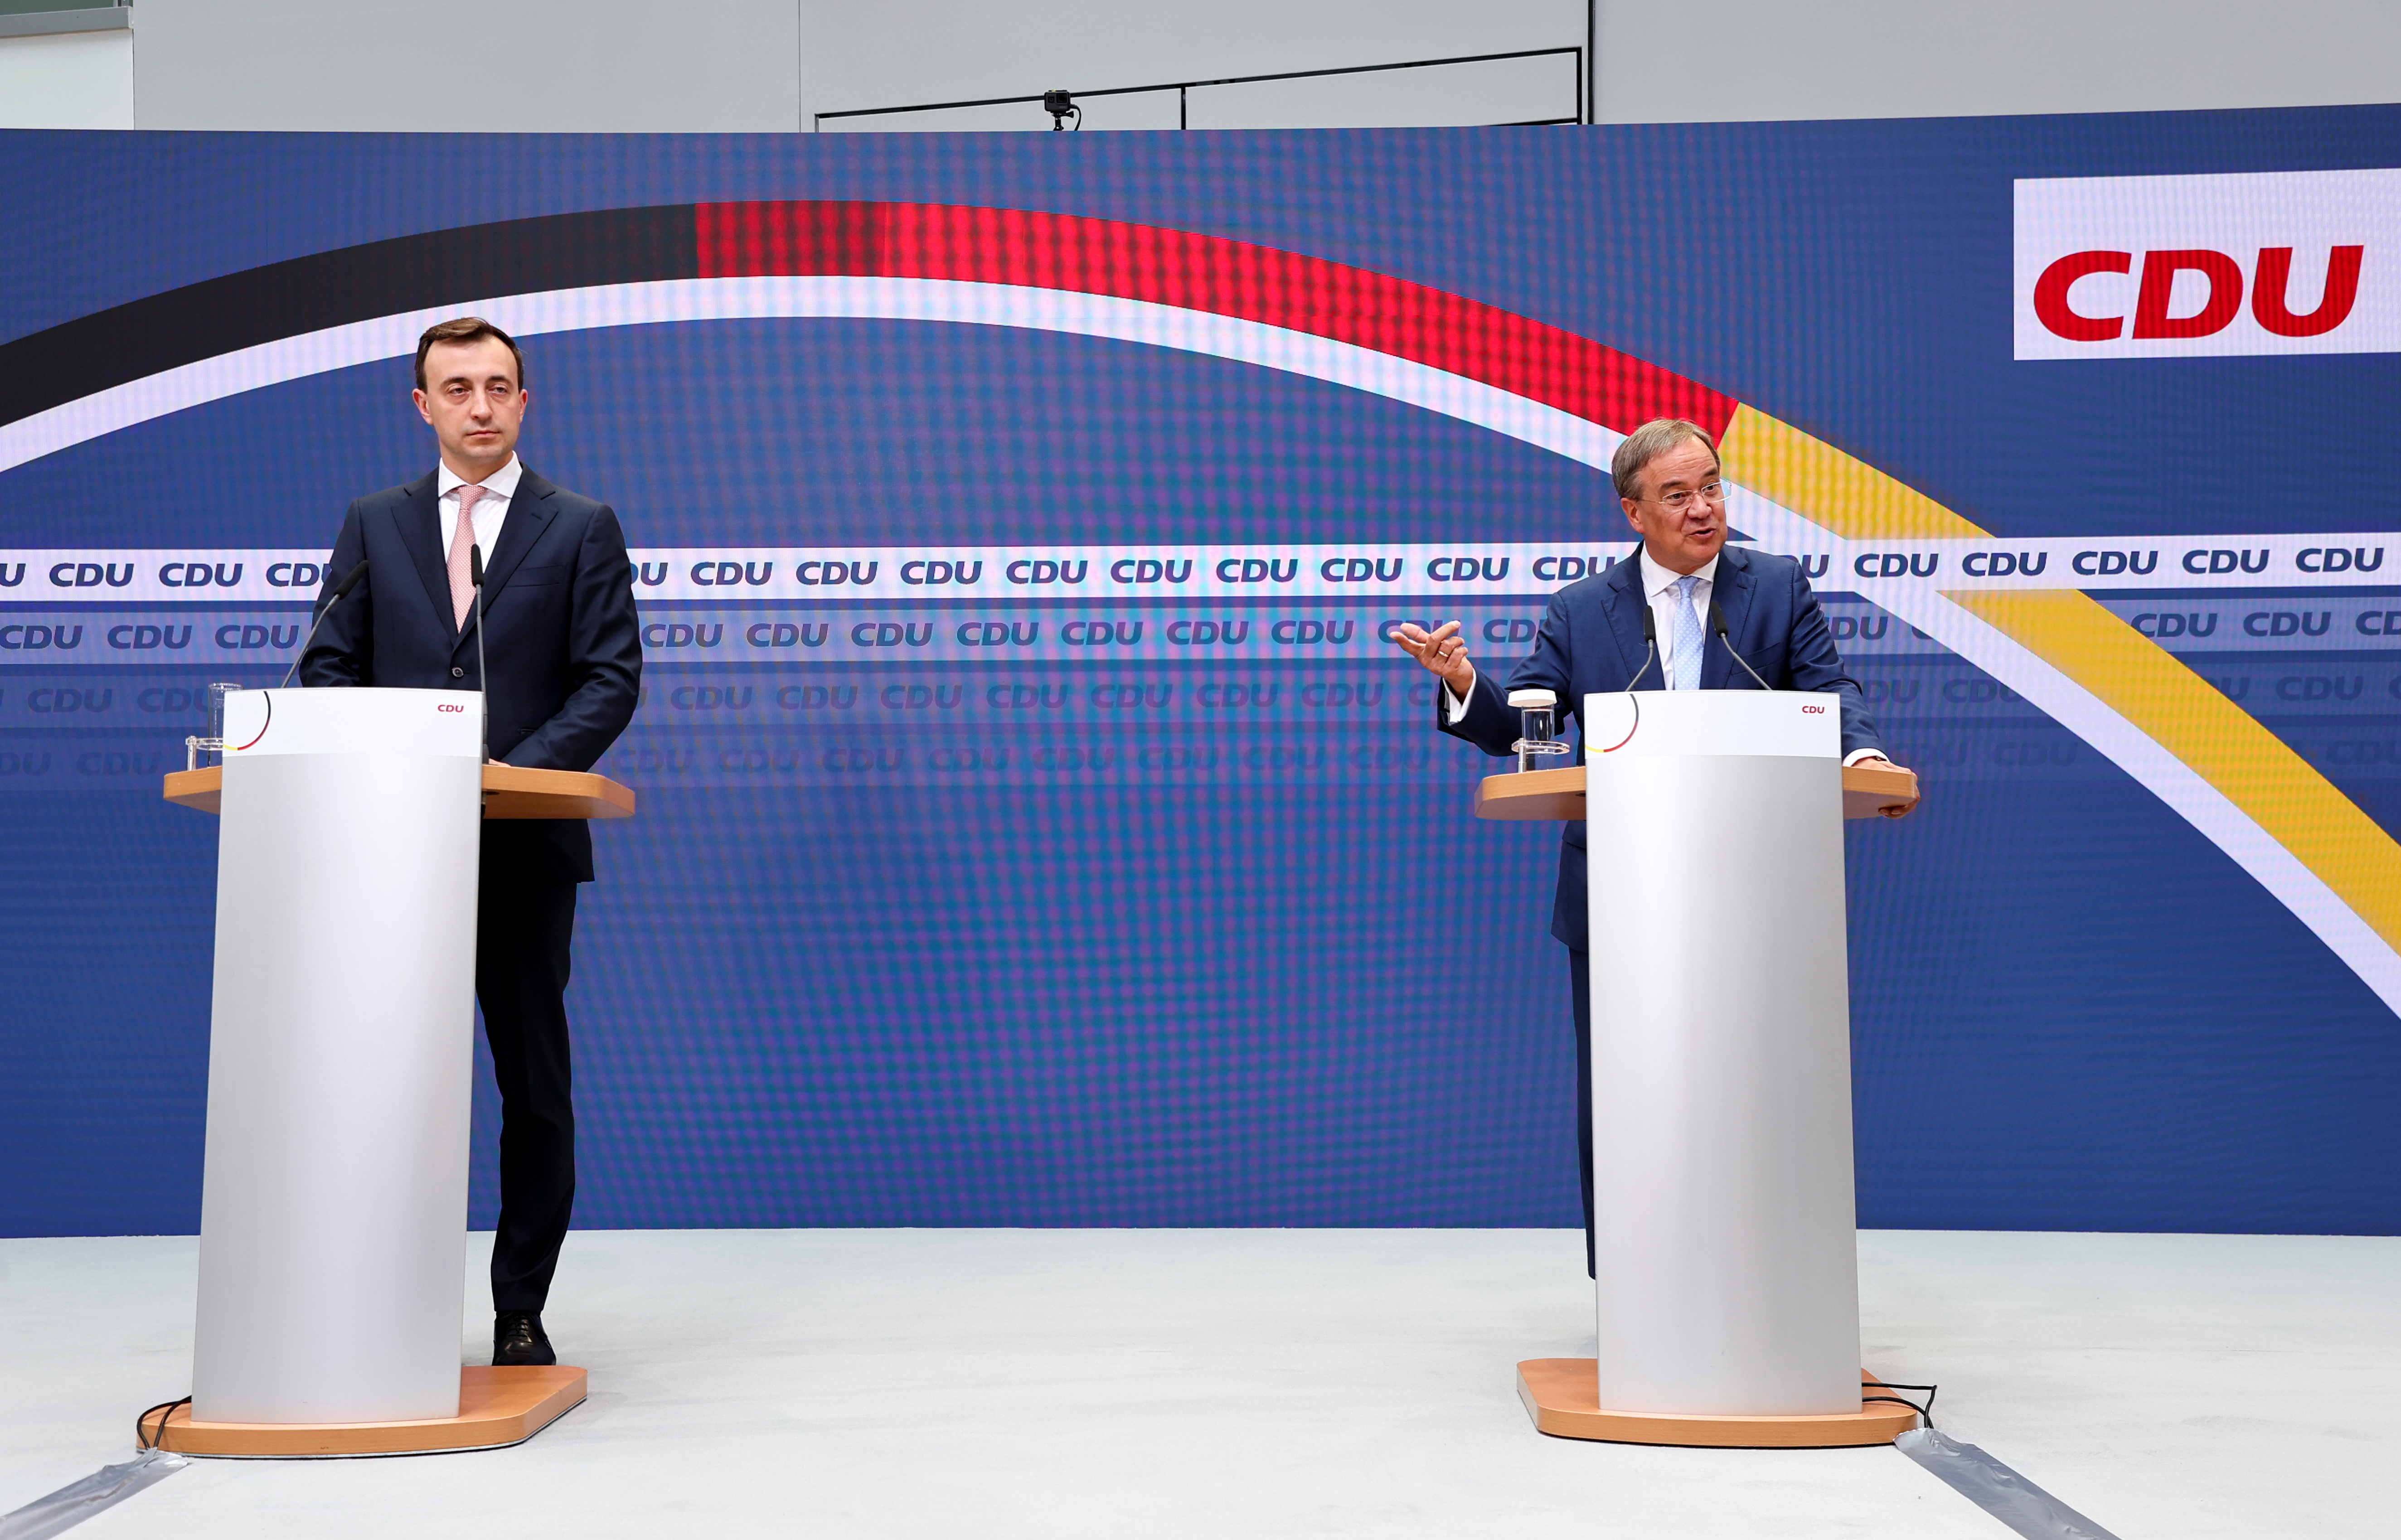 Christian Democratic Union (CDU) leader and top candidate for chancellor Armin Laschet and secretary general Paul Ziemiak hold a news conference, one day after the German general elections, in Berlin, Germany, September 27, 2021. REUTERS/Fabrizio Bensch